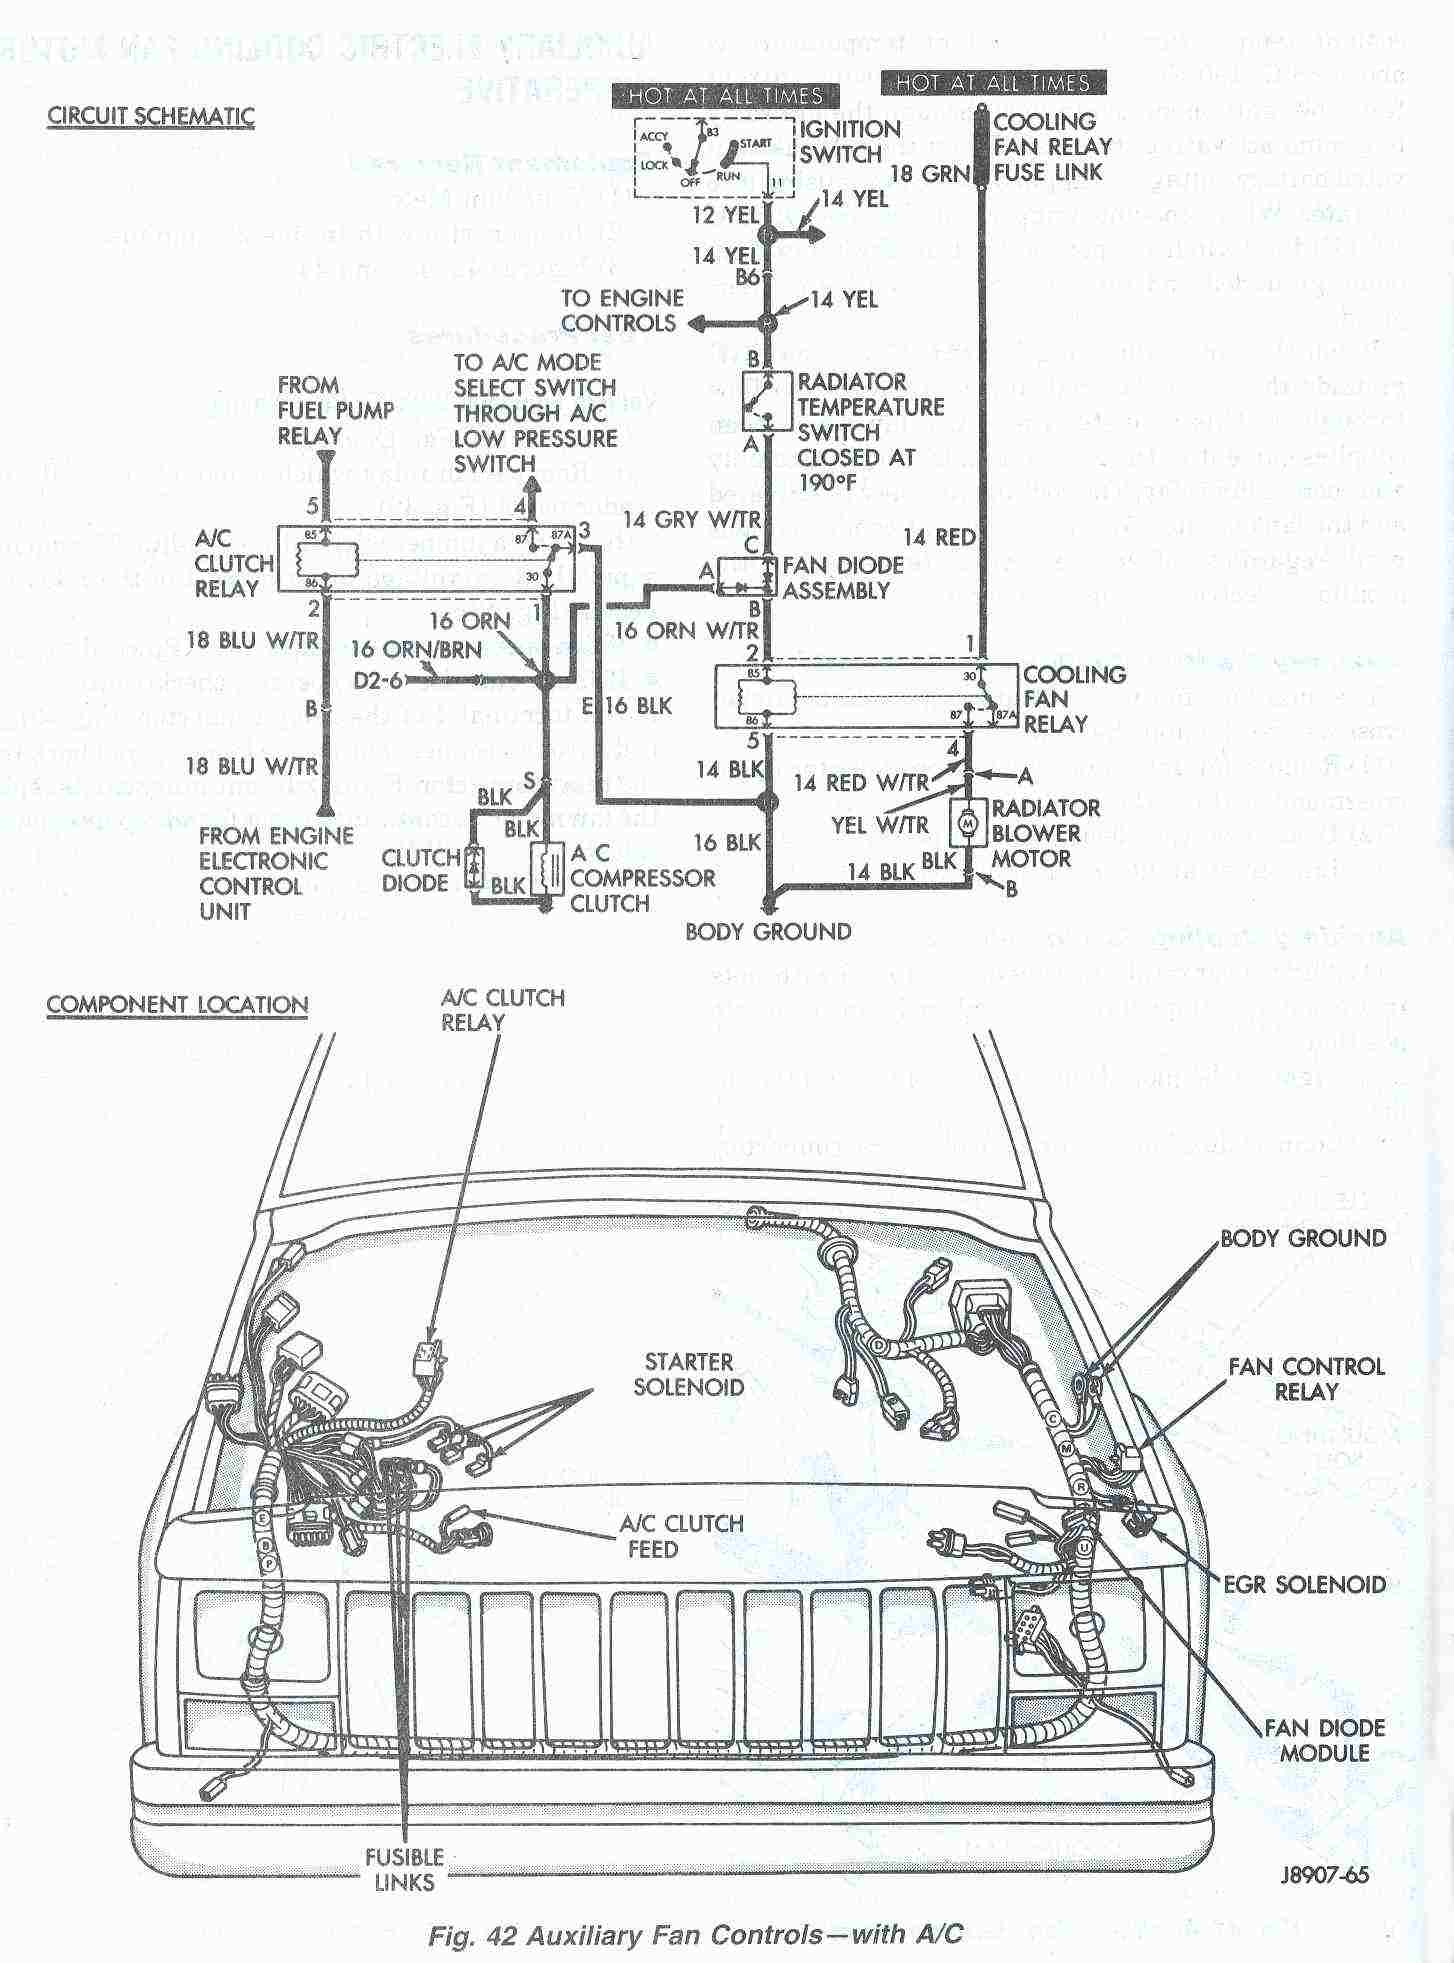 Auxiliary_Fan_Schematic_Fig_42 jeep cherokee cooling system electric cooling fan 1989 jeep cherokee wiring diagram at readyjetset.co